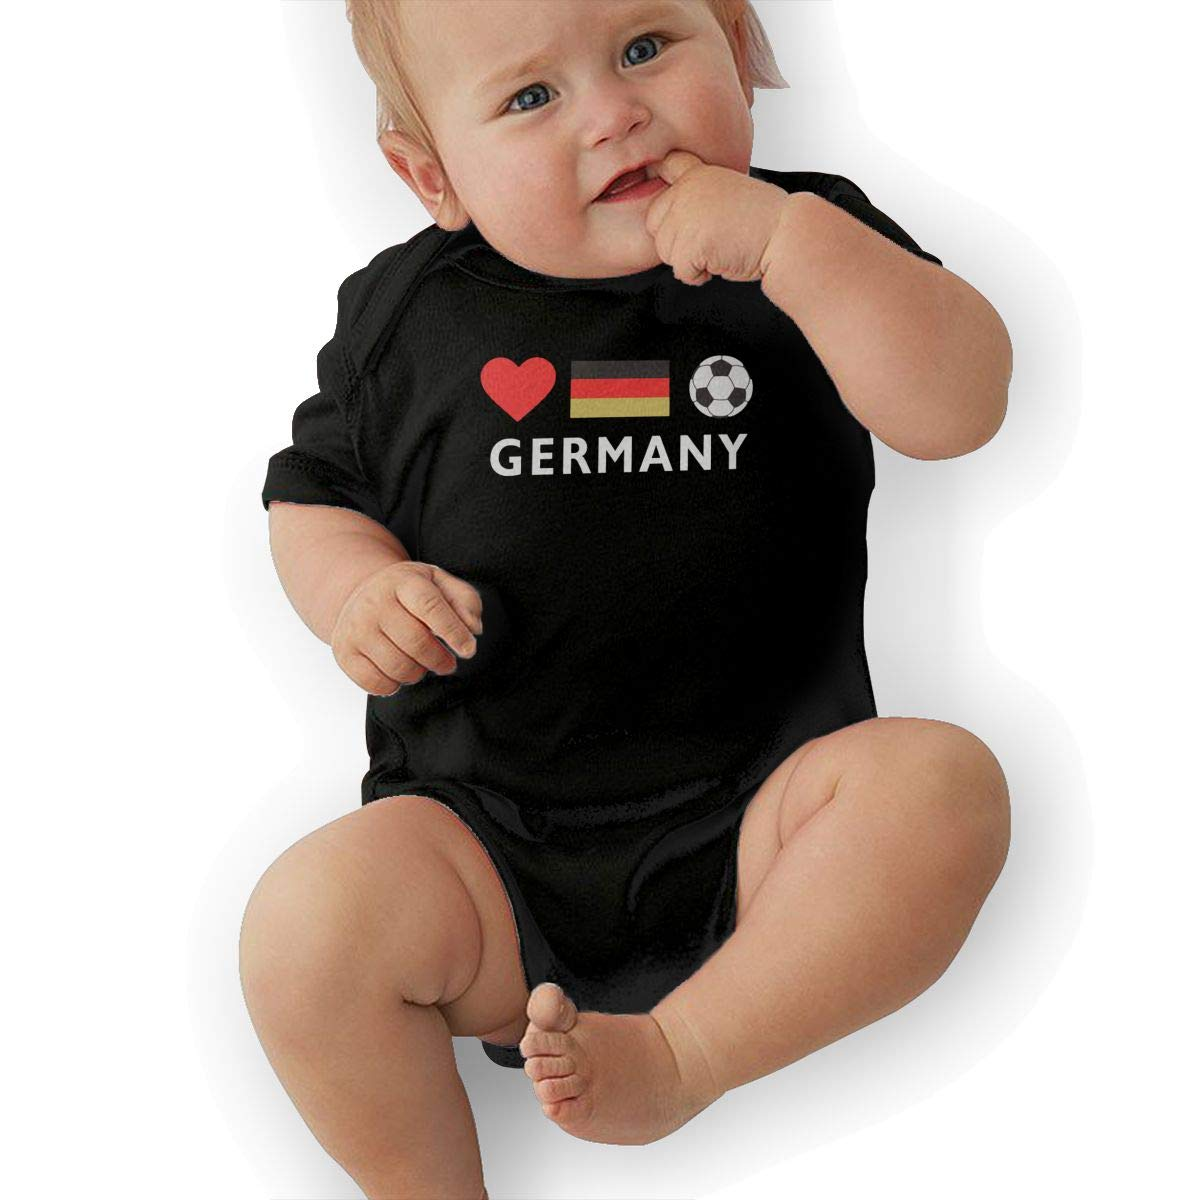 U88oi-8 Short Sleeve Cotton Rompers for Baby Girls Boys Cute Germany Football German Soccer Jumpsuit